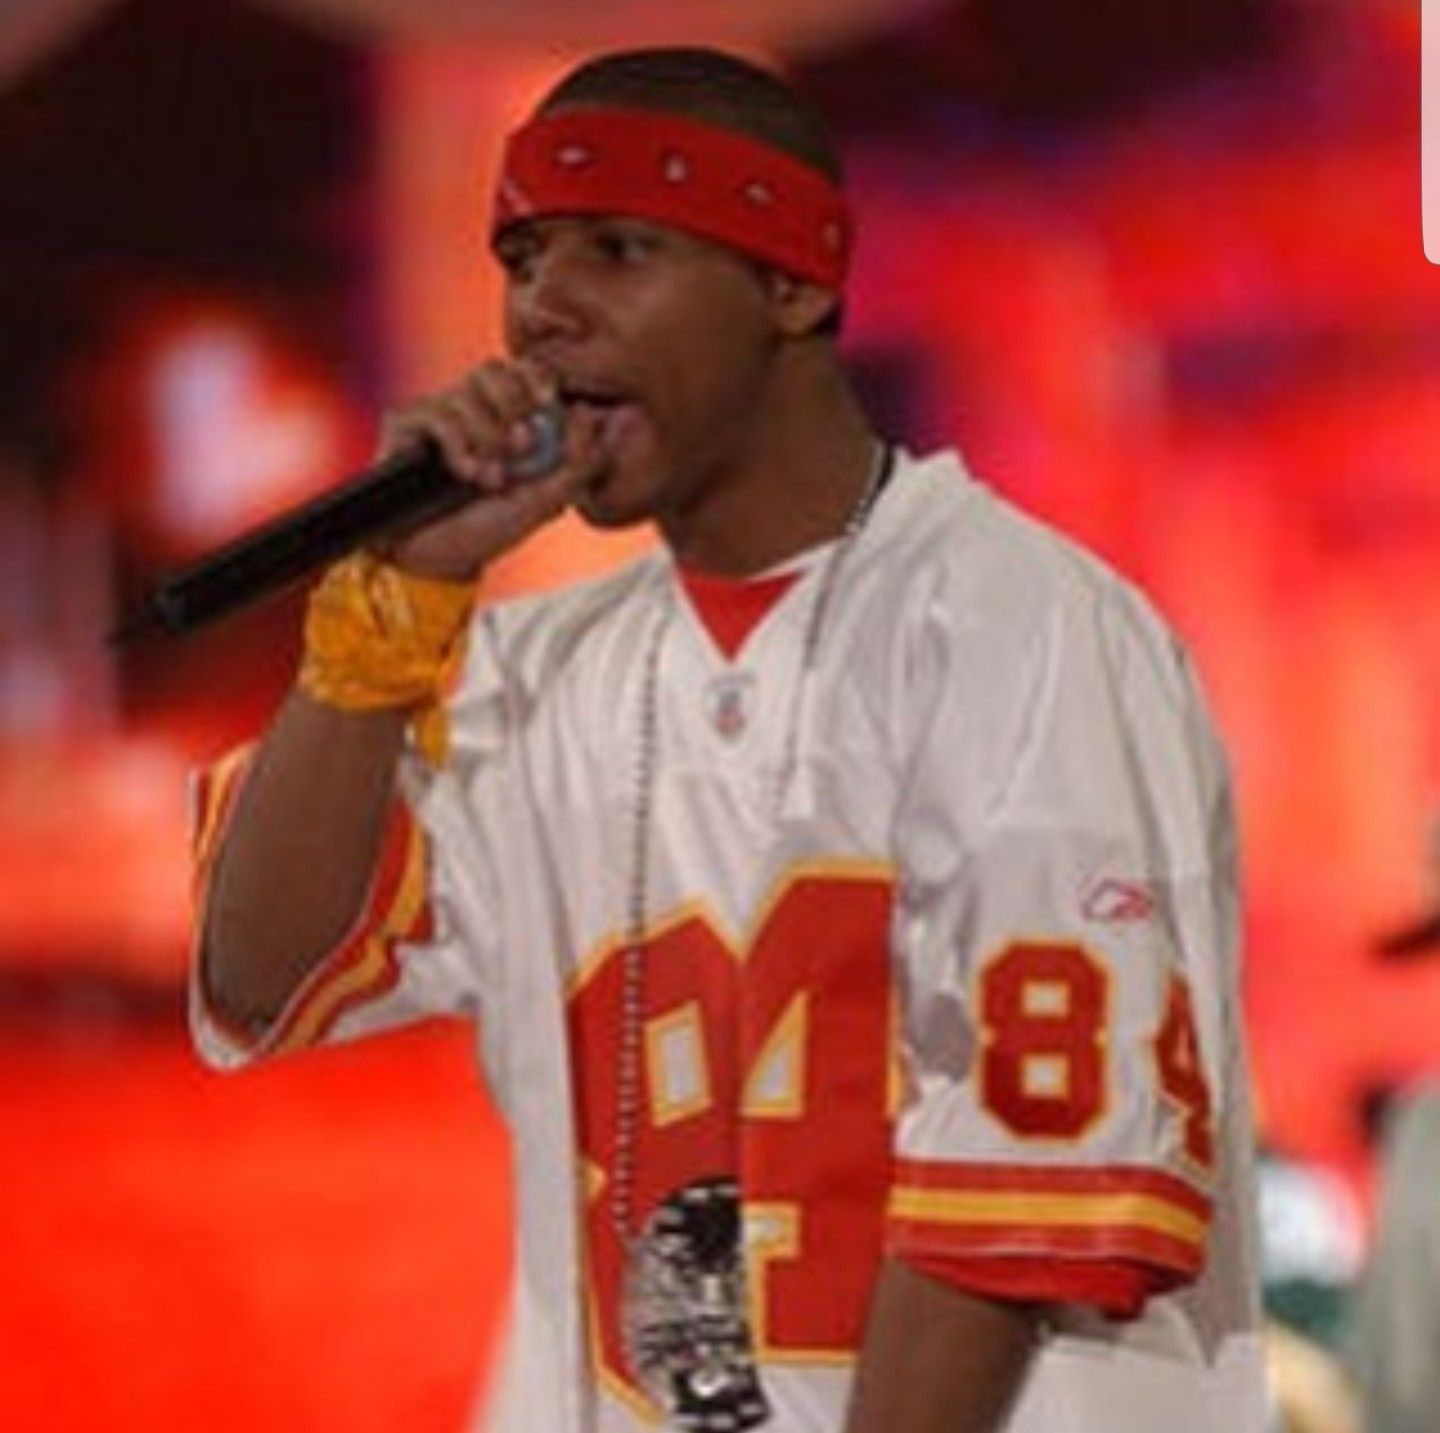 Pin by Luis Torres on Dipset Hip hop outfits, Hip hop